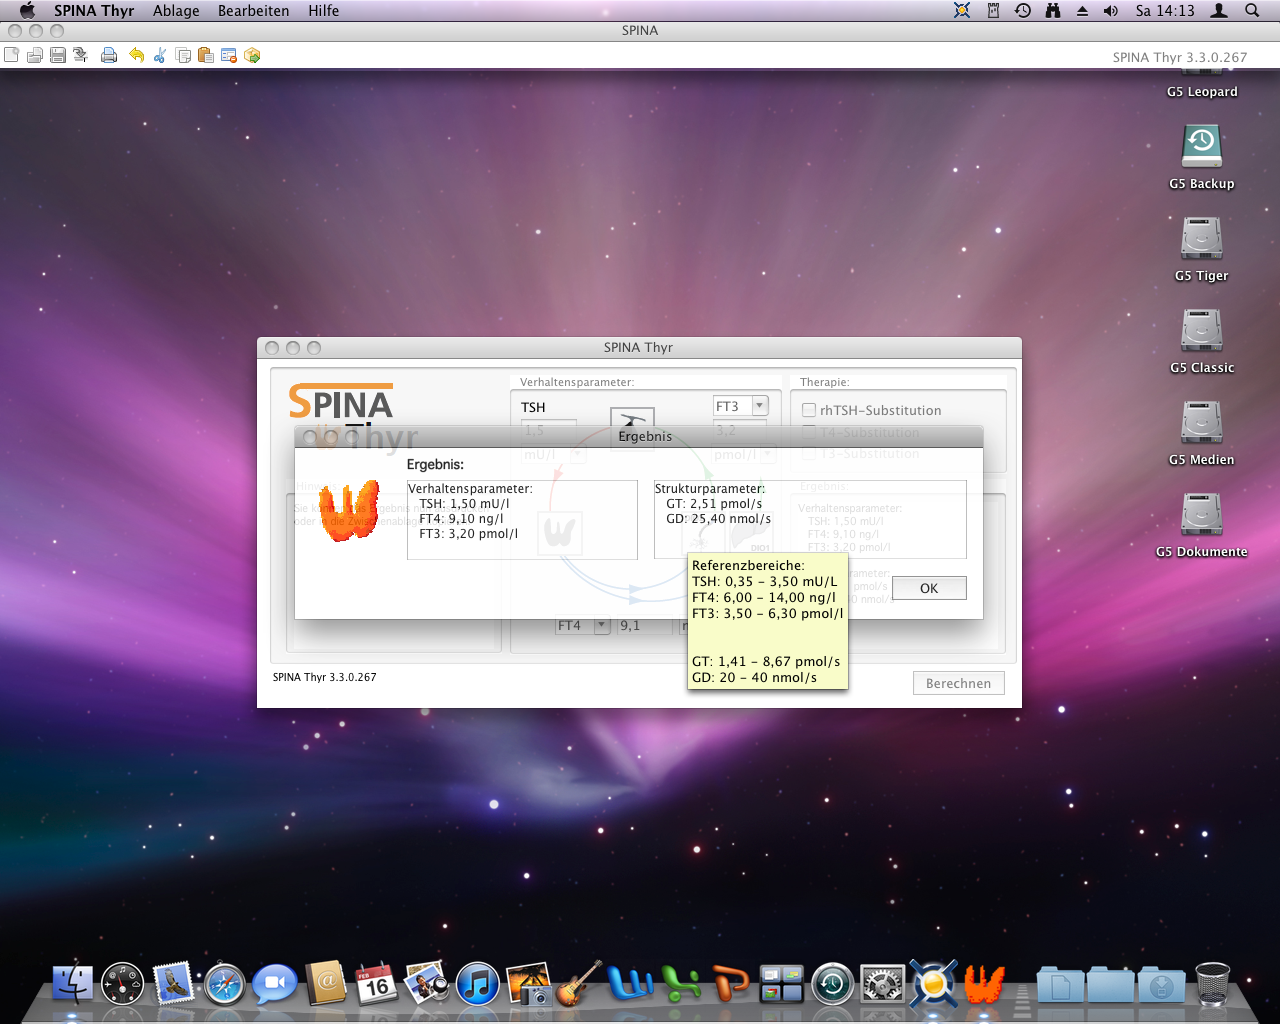 SPINA Thyr for macOS